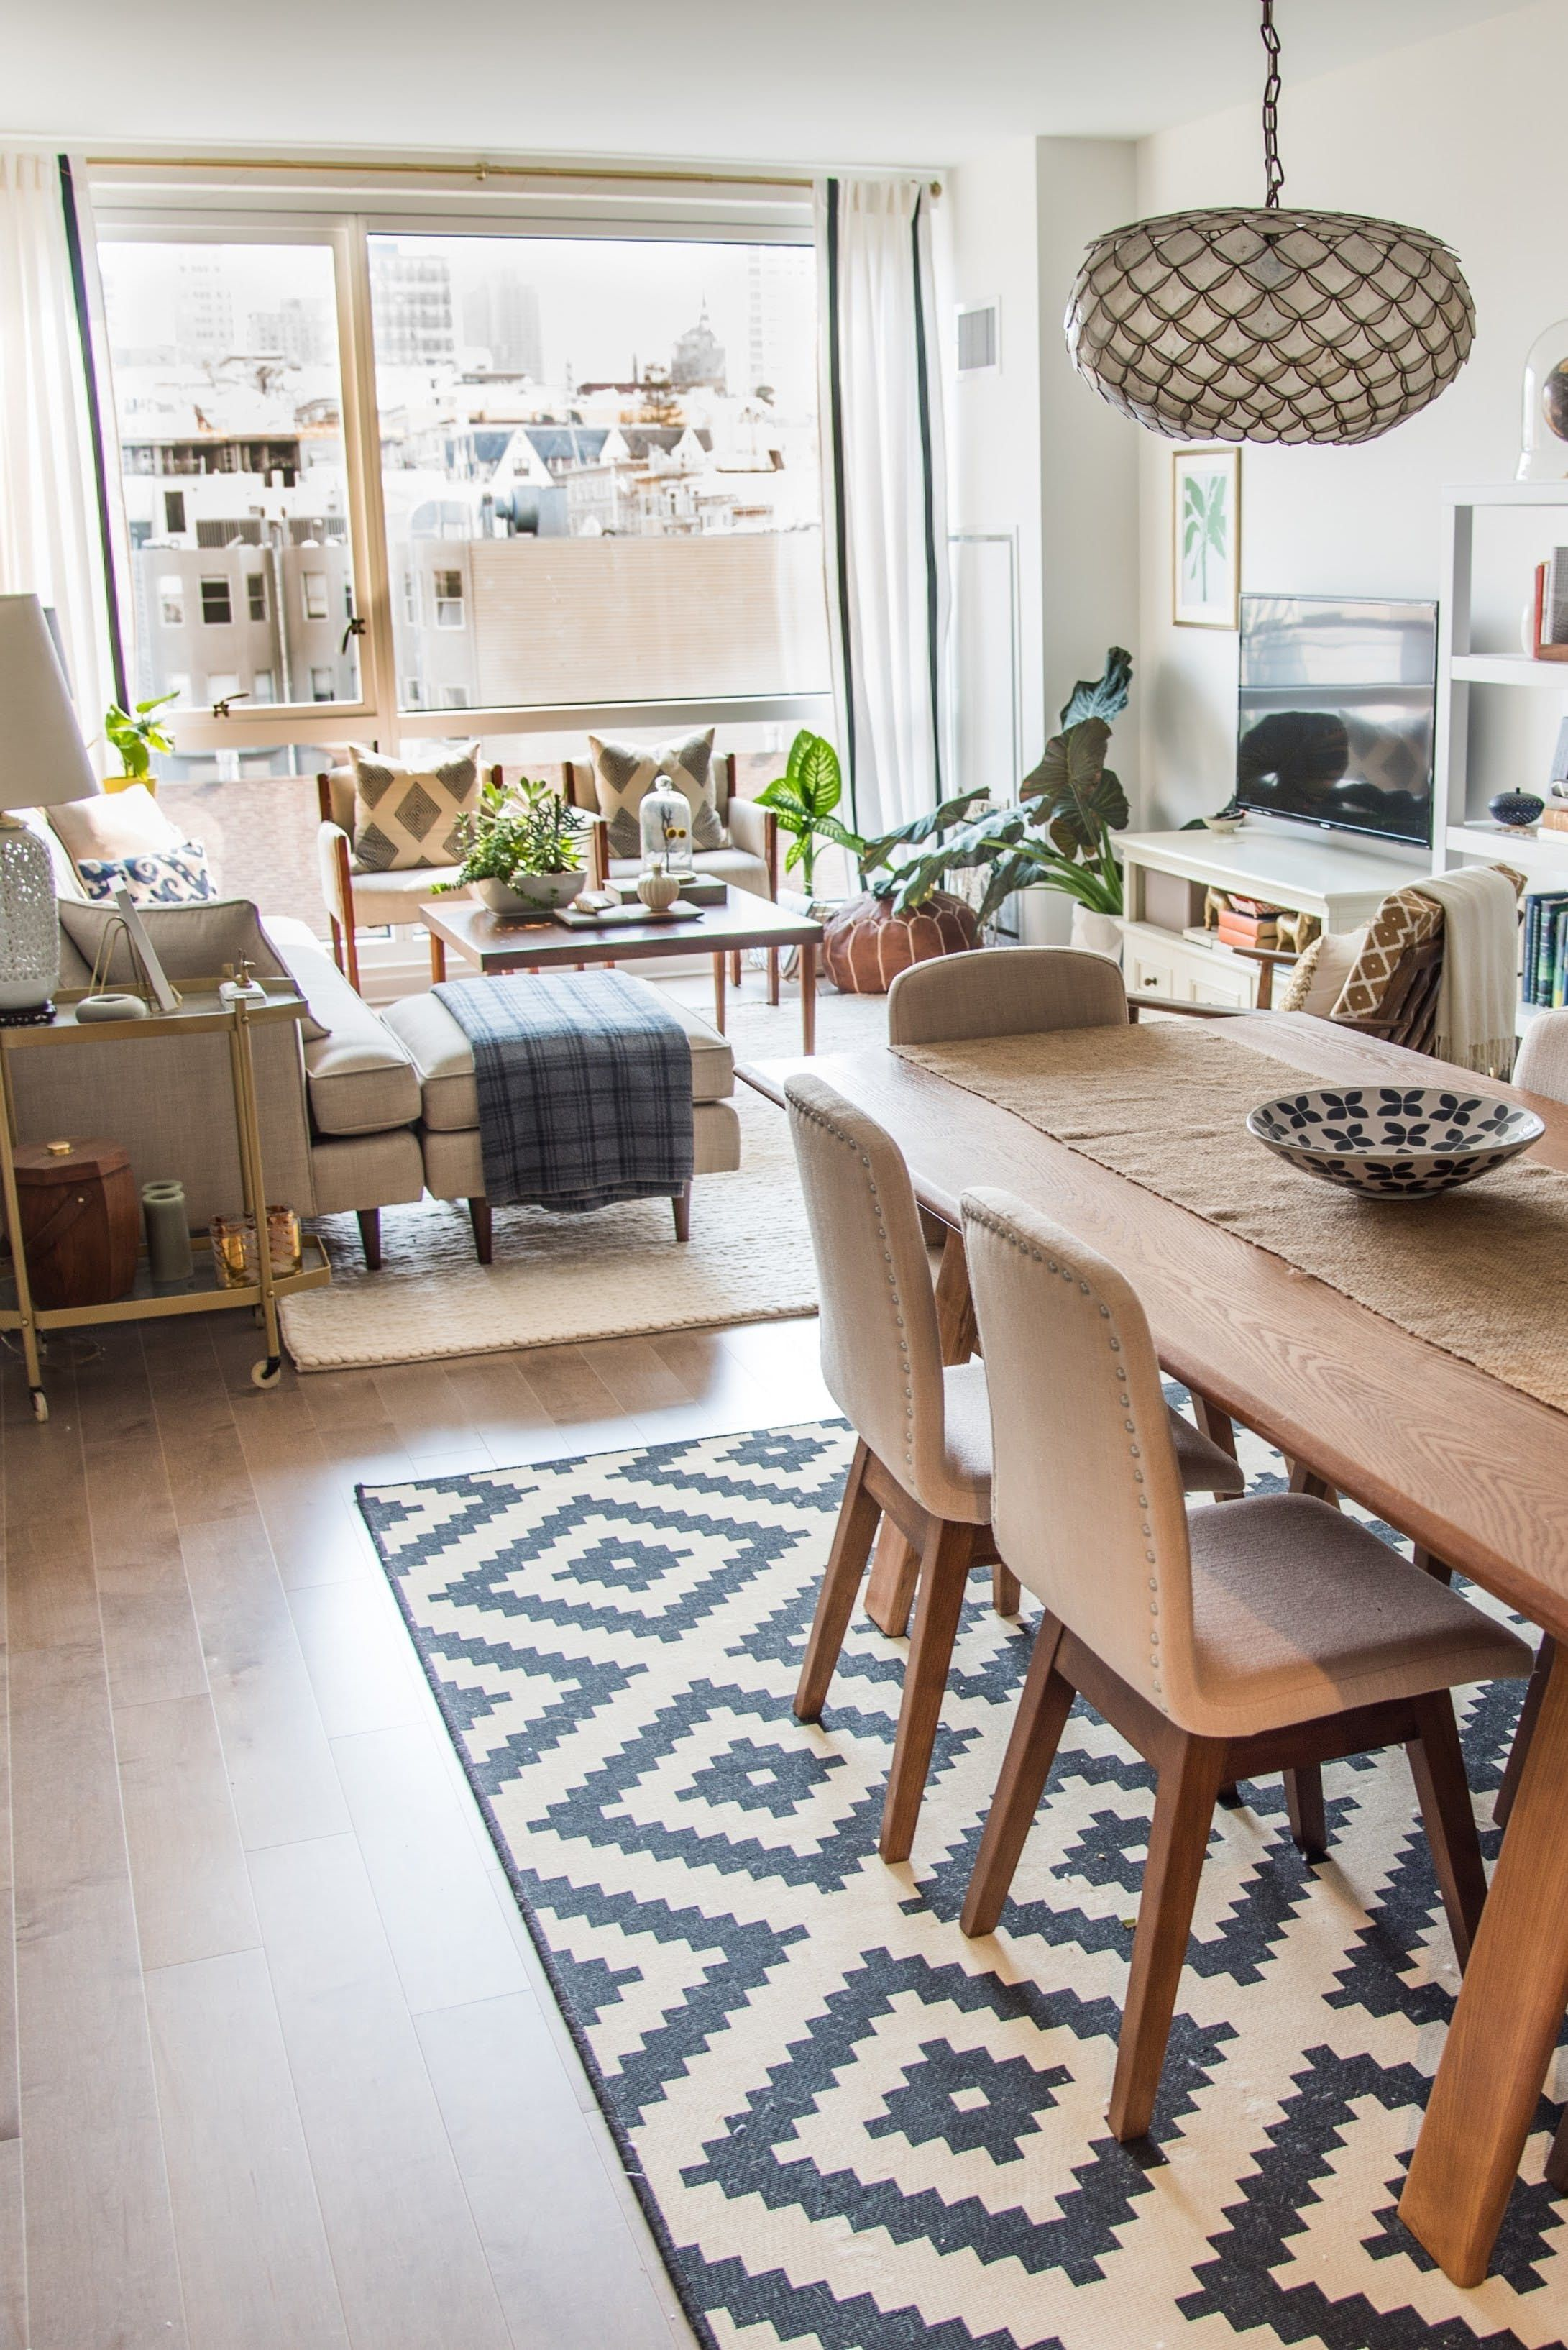 Small Living Room With Dining Table Ideas Traditional Curtains House Tour A Sophisticated Mixed Matched Rental Dreams Jeni S Apartment Rooms Rugs